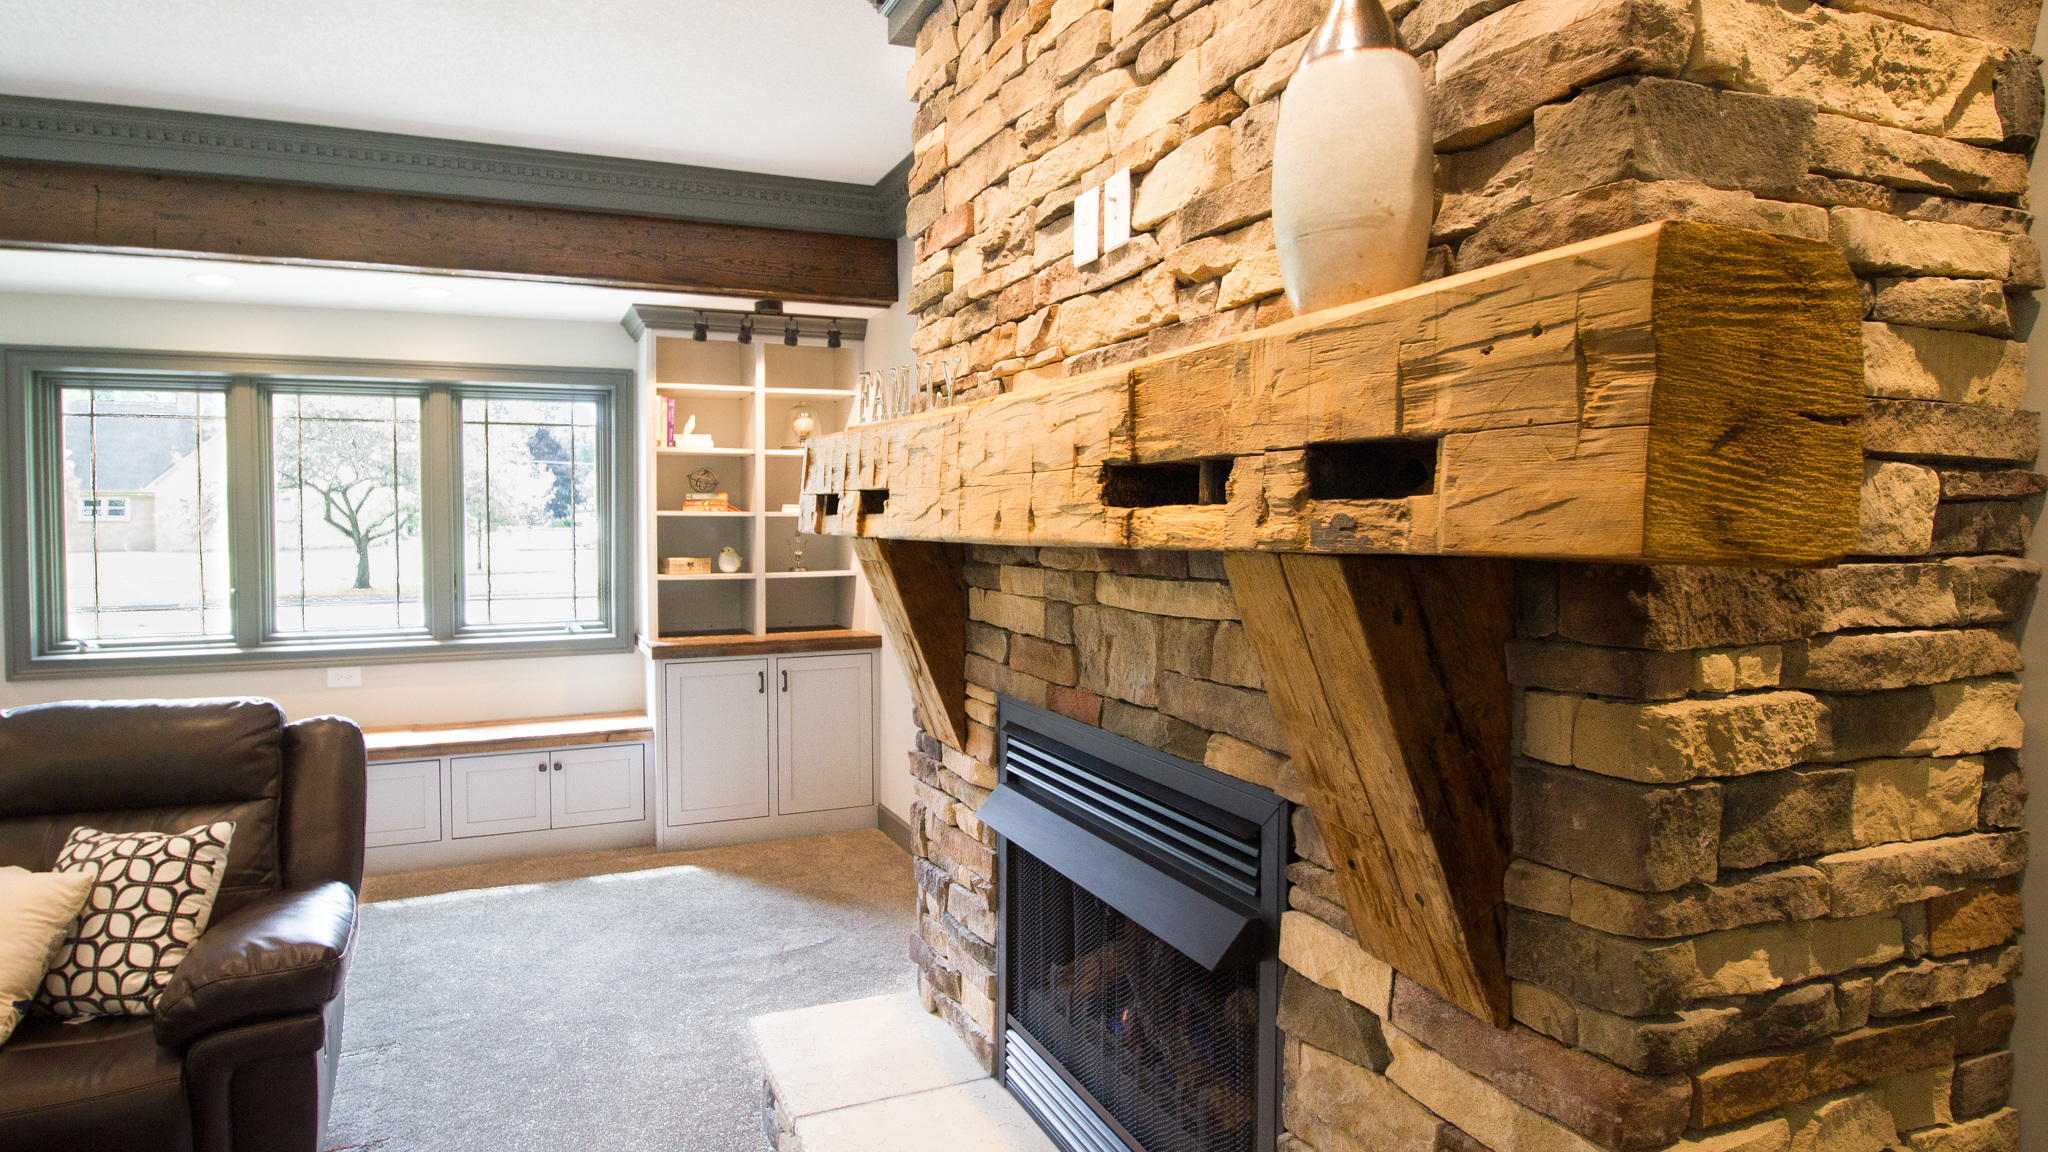 Interior-Fireplace-Remodel-3-1